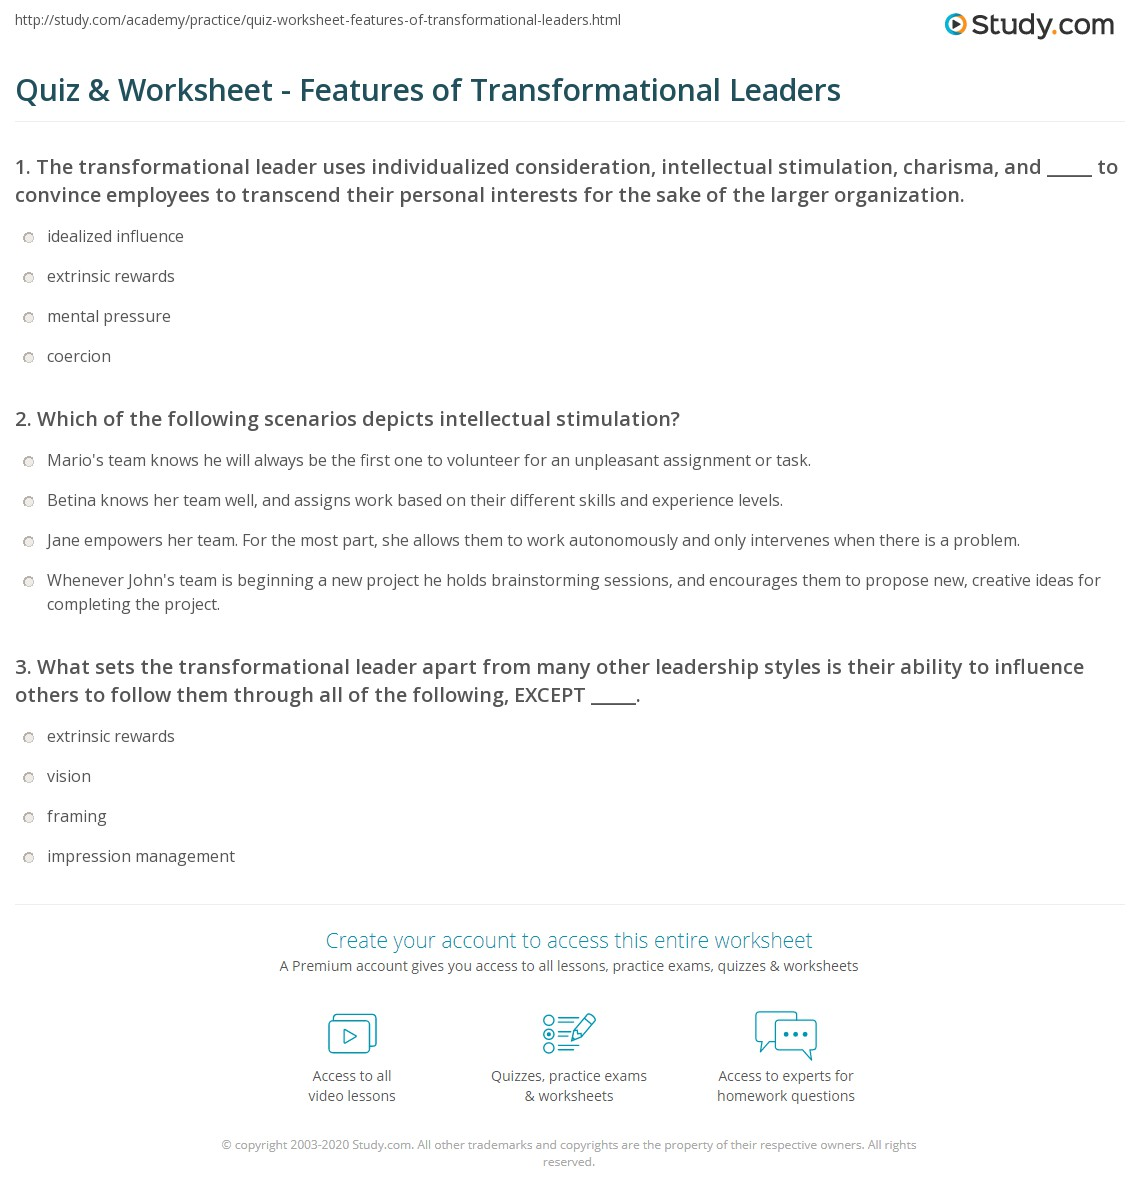 Quiz & Worksheet - Features of Transformational Leaders